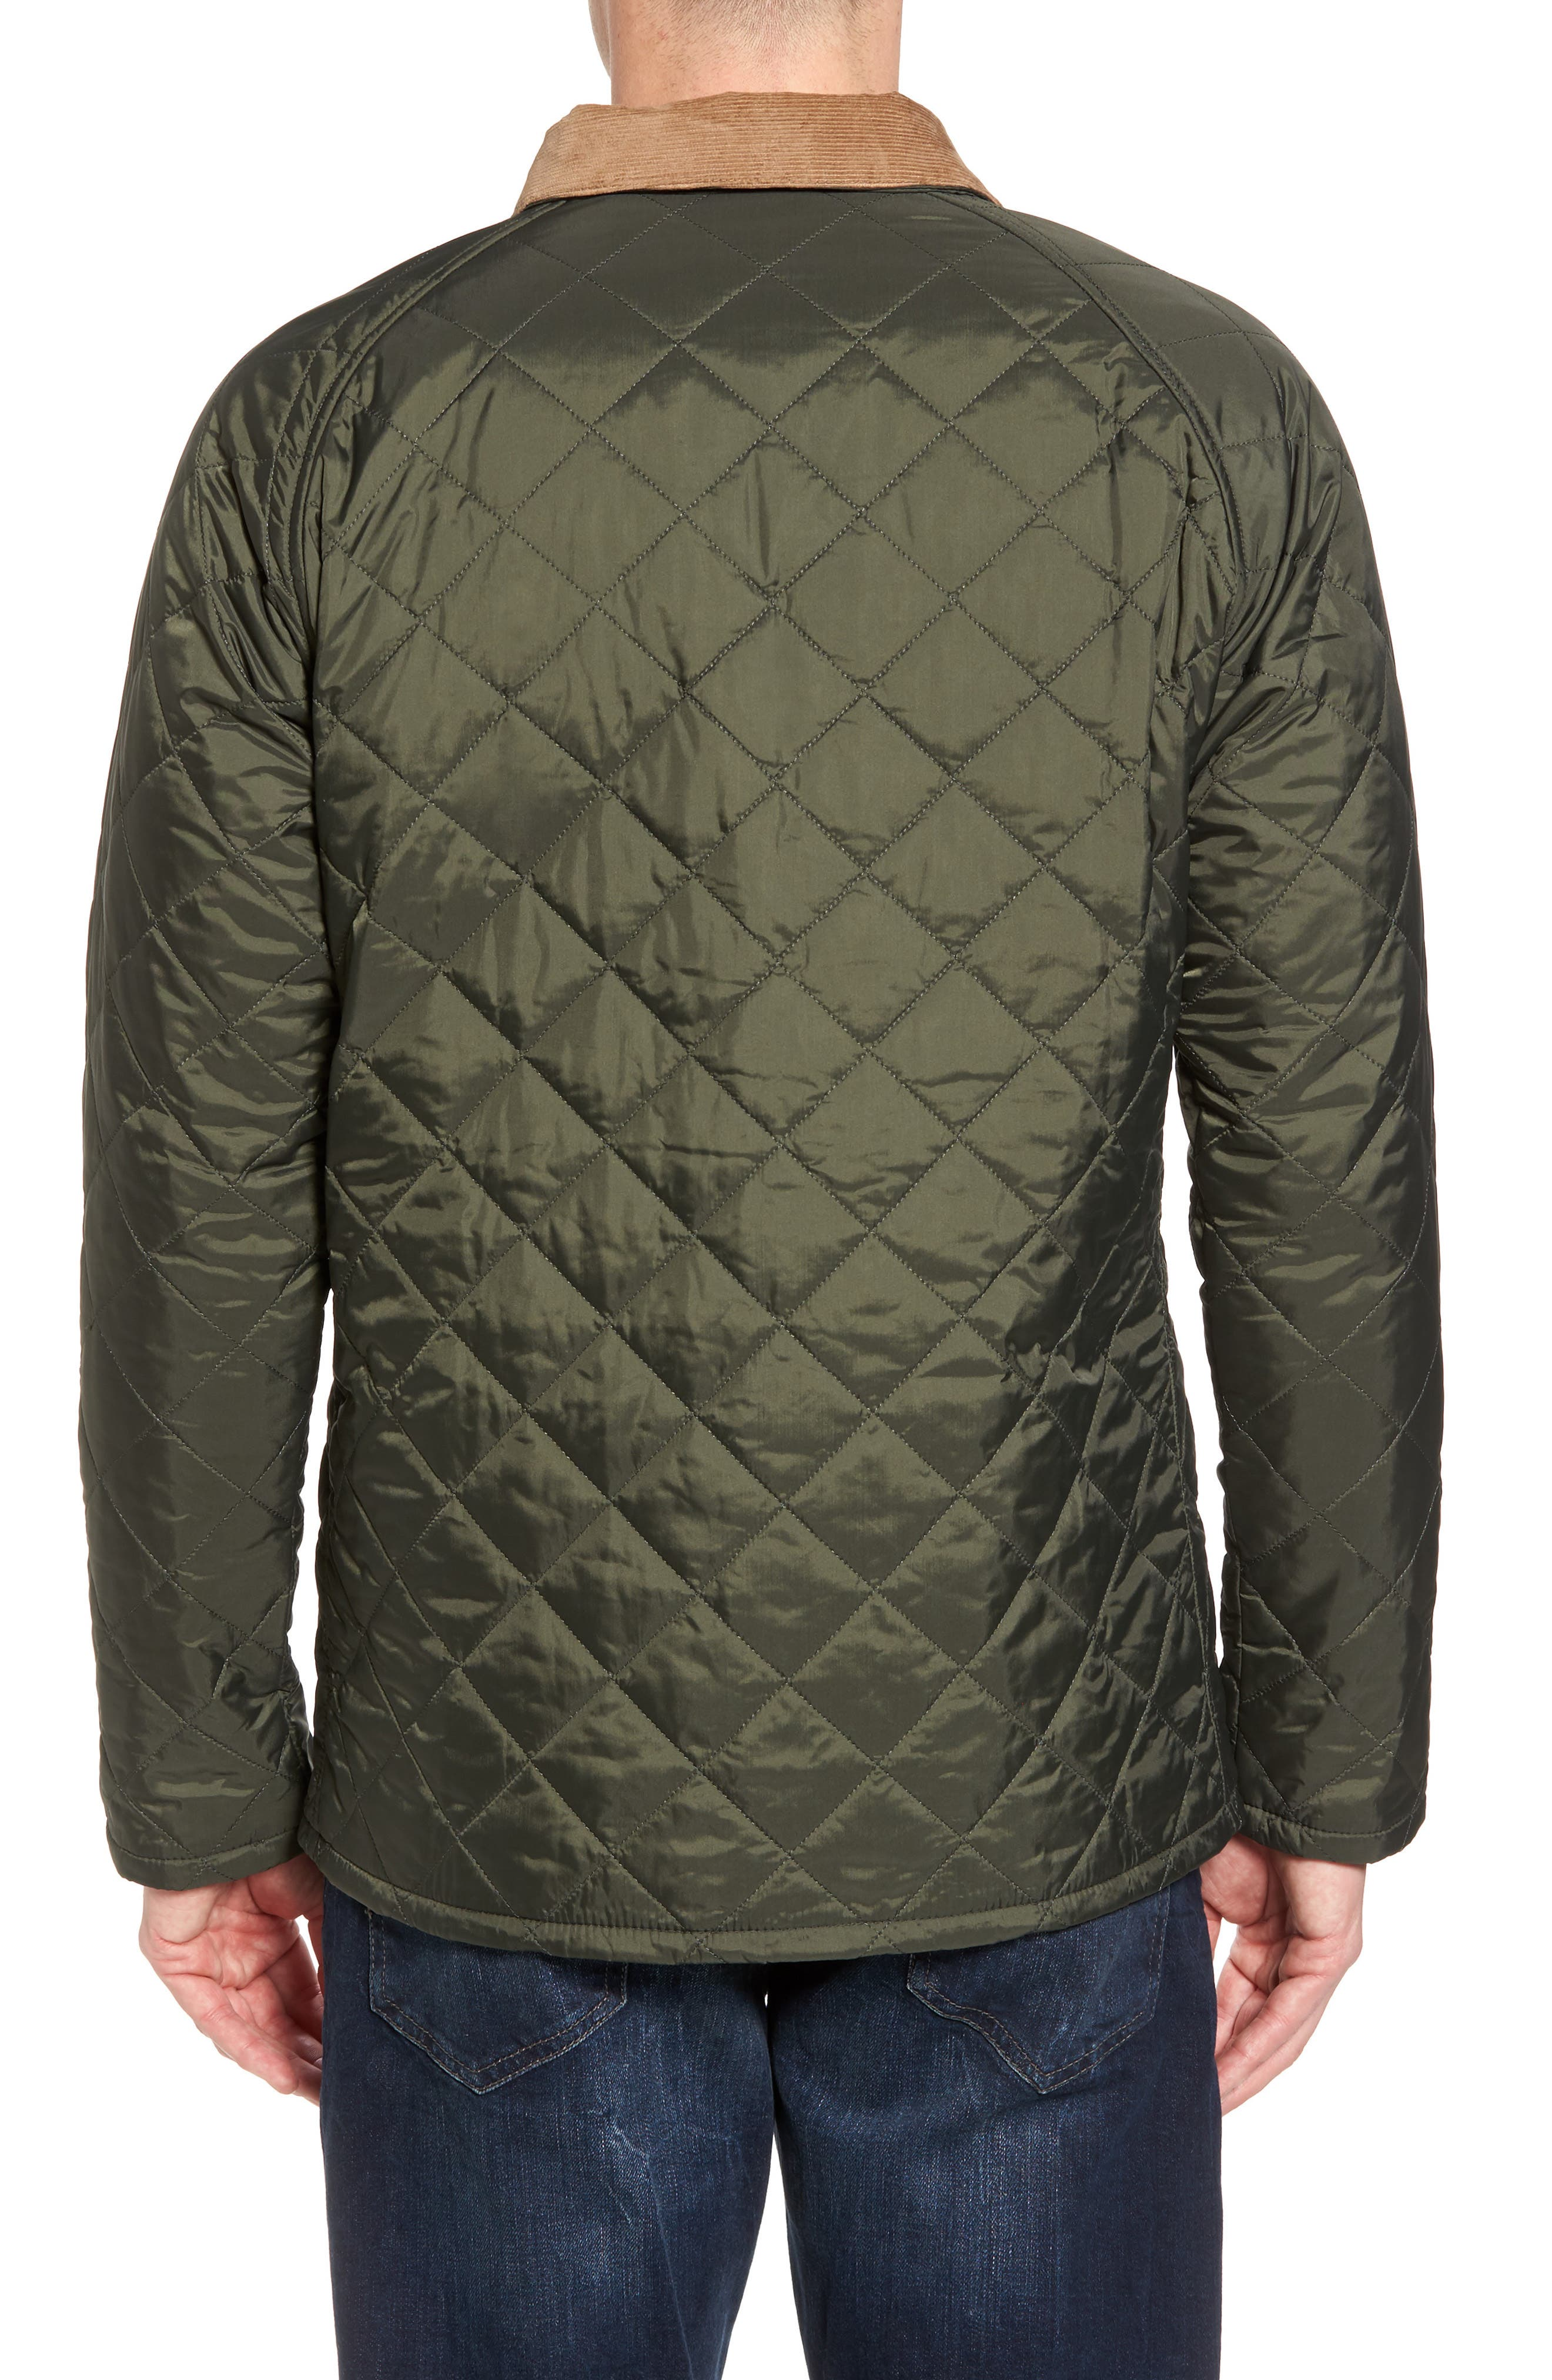 'Canterdale' Slim Fit Water-Resistant Diamond Quilted Jacket,                             Alternate thumbnail 3, color,                             305